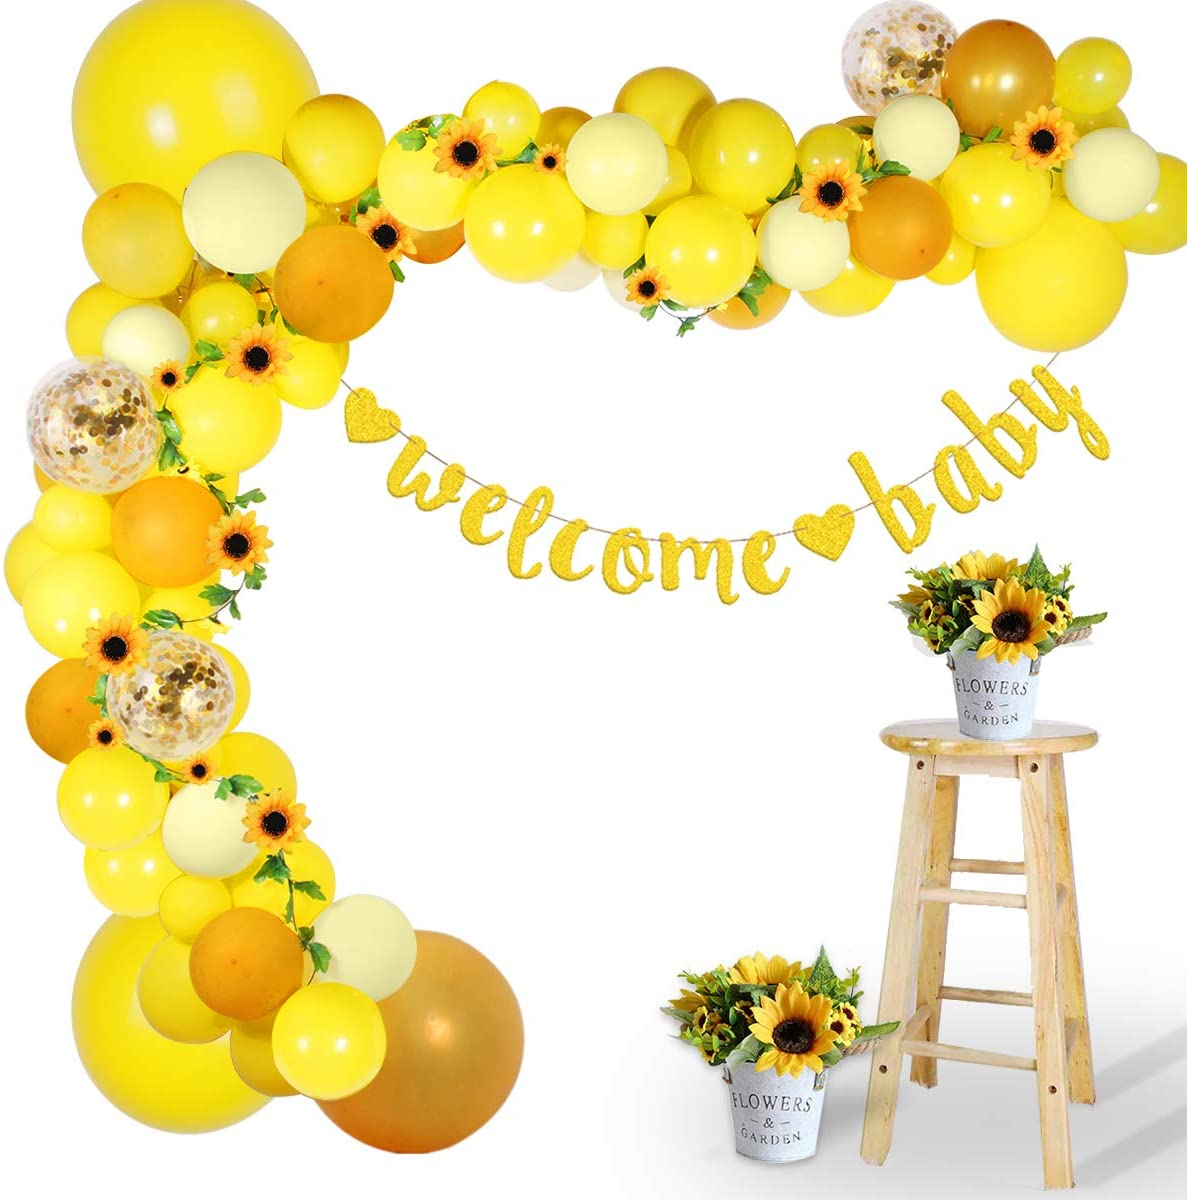 Sunflower Baby Shower Decorations for Girl Boy, Sunflower Balloon Garland Kit with 100 Balloons, Gold Color Banner, Flower Vine, Yellow Balloon Arch Kit for First Sunflower Birthday, Bee Theme Party